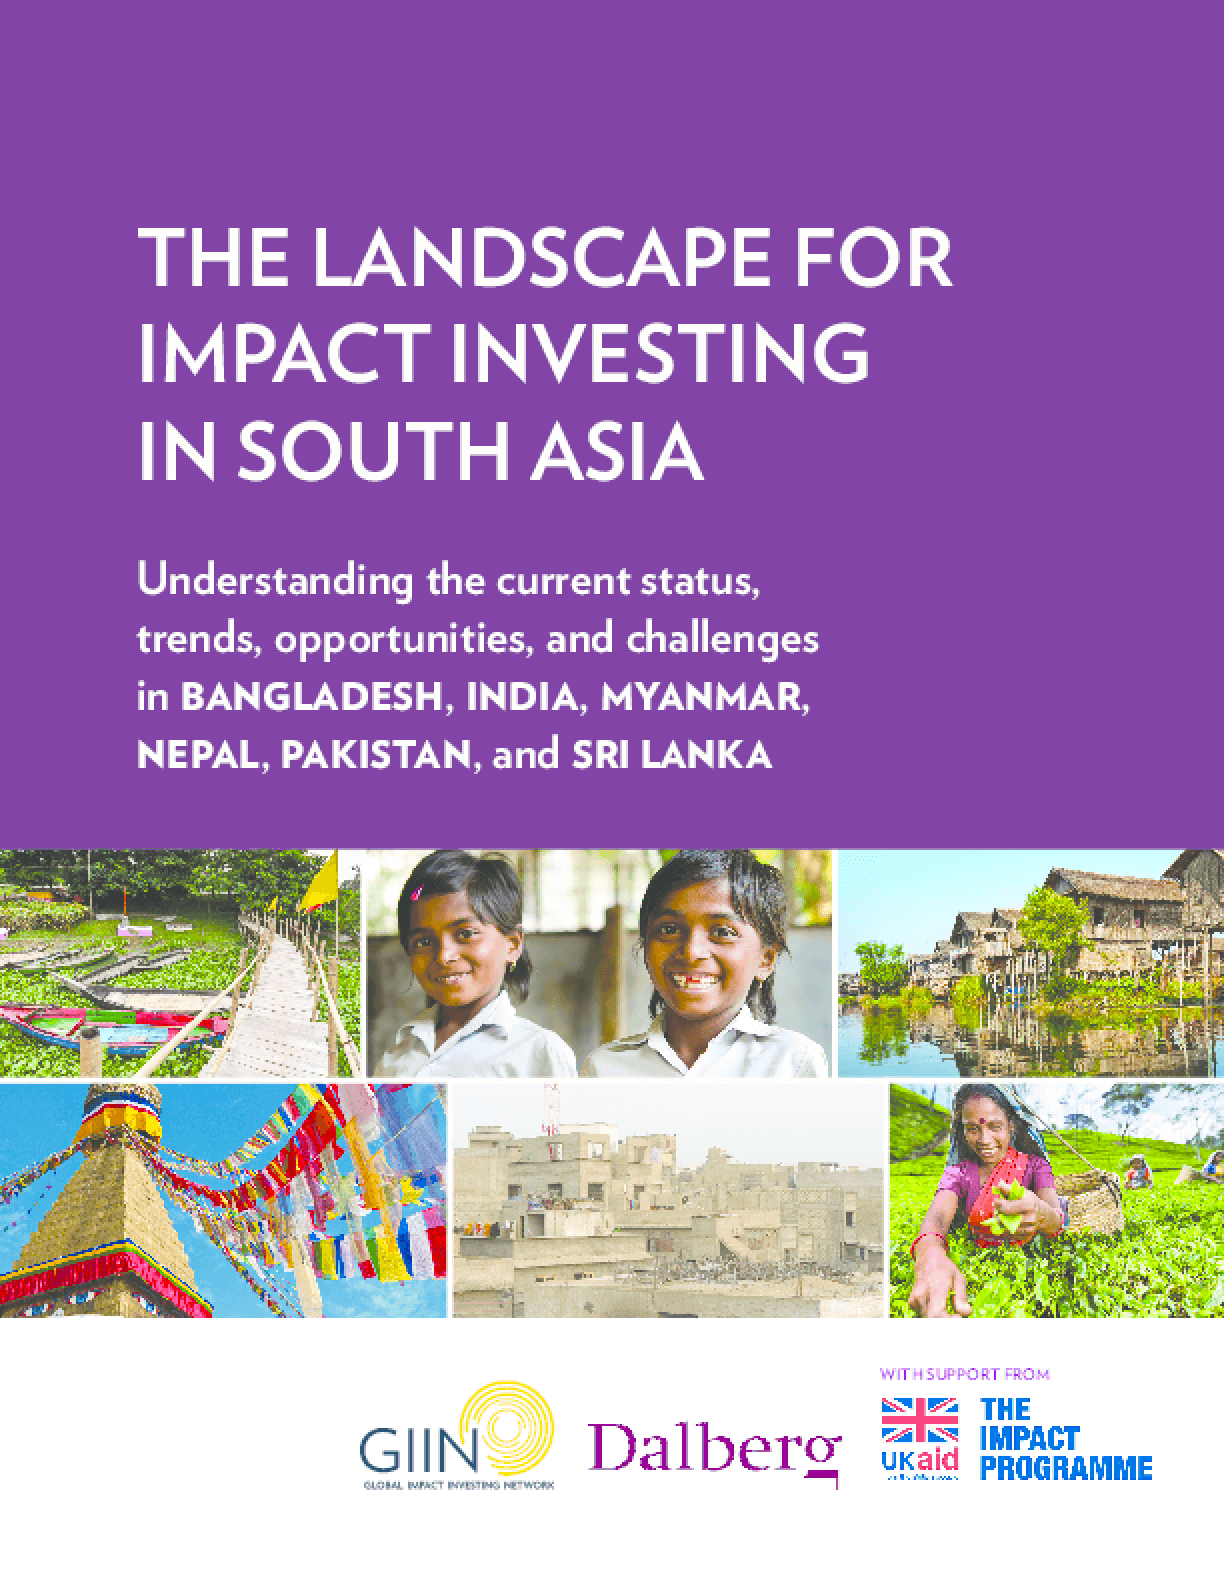 The Landscape for Impact Investing in South Asia